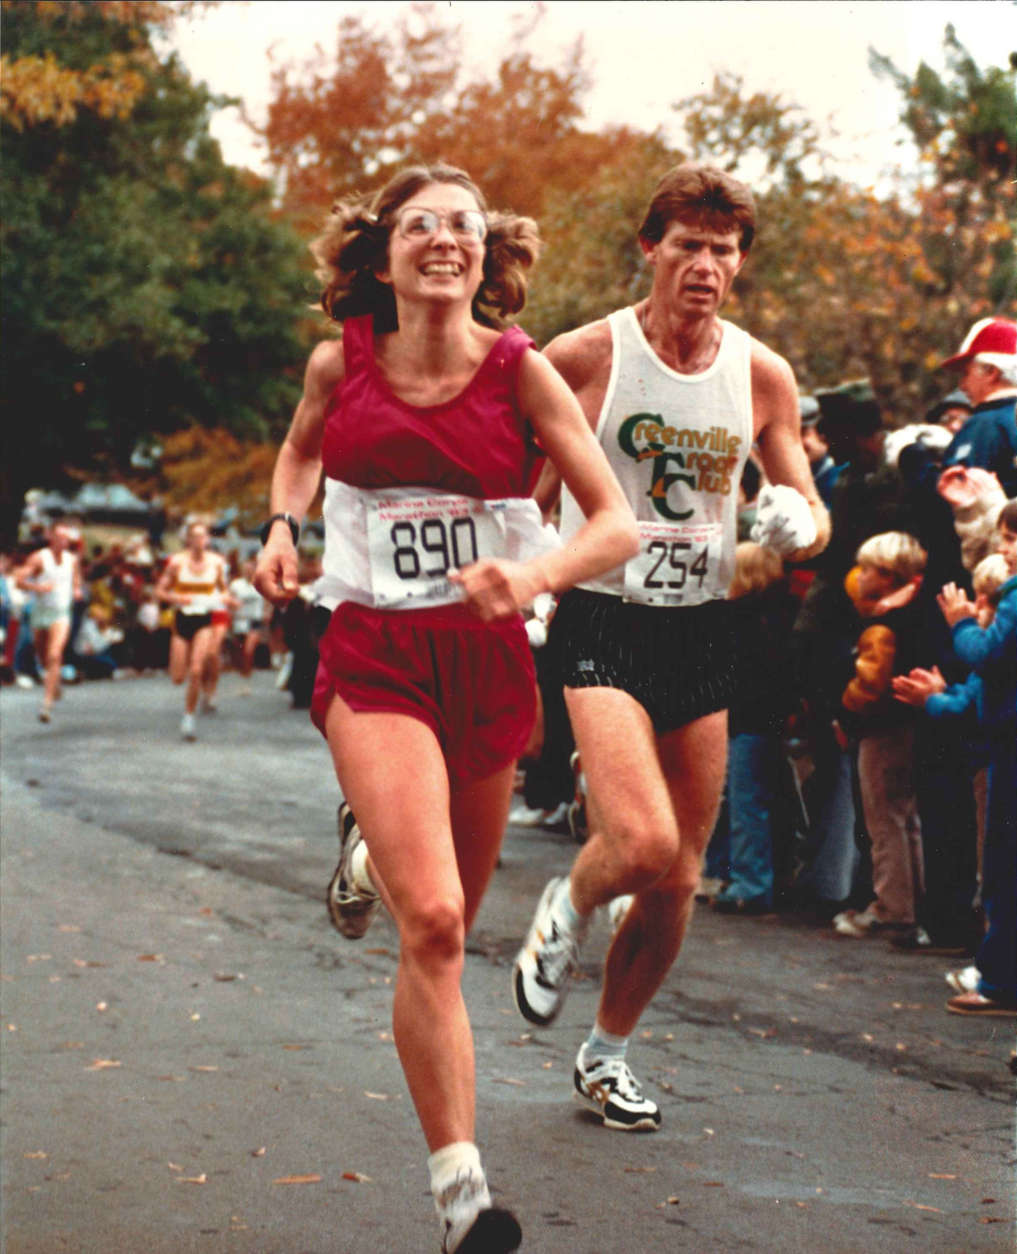 Susan Mallery of Columbus, Ohio, was the first place female finisher in the Marine Corps Marathon's first two years: 1976 and 1977. (Courtesy Marine Corps Marathon)